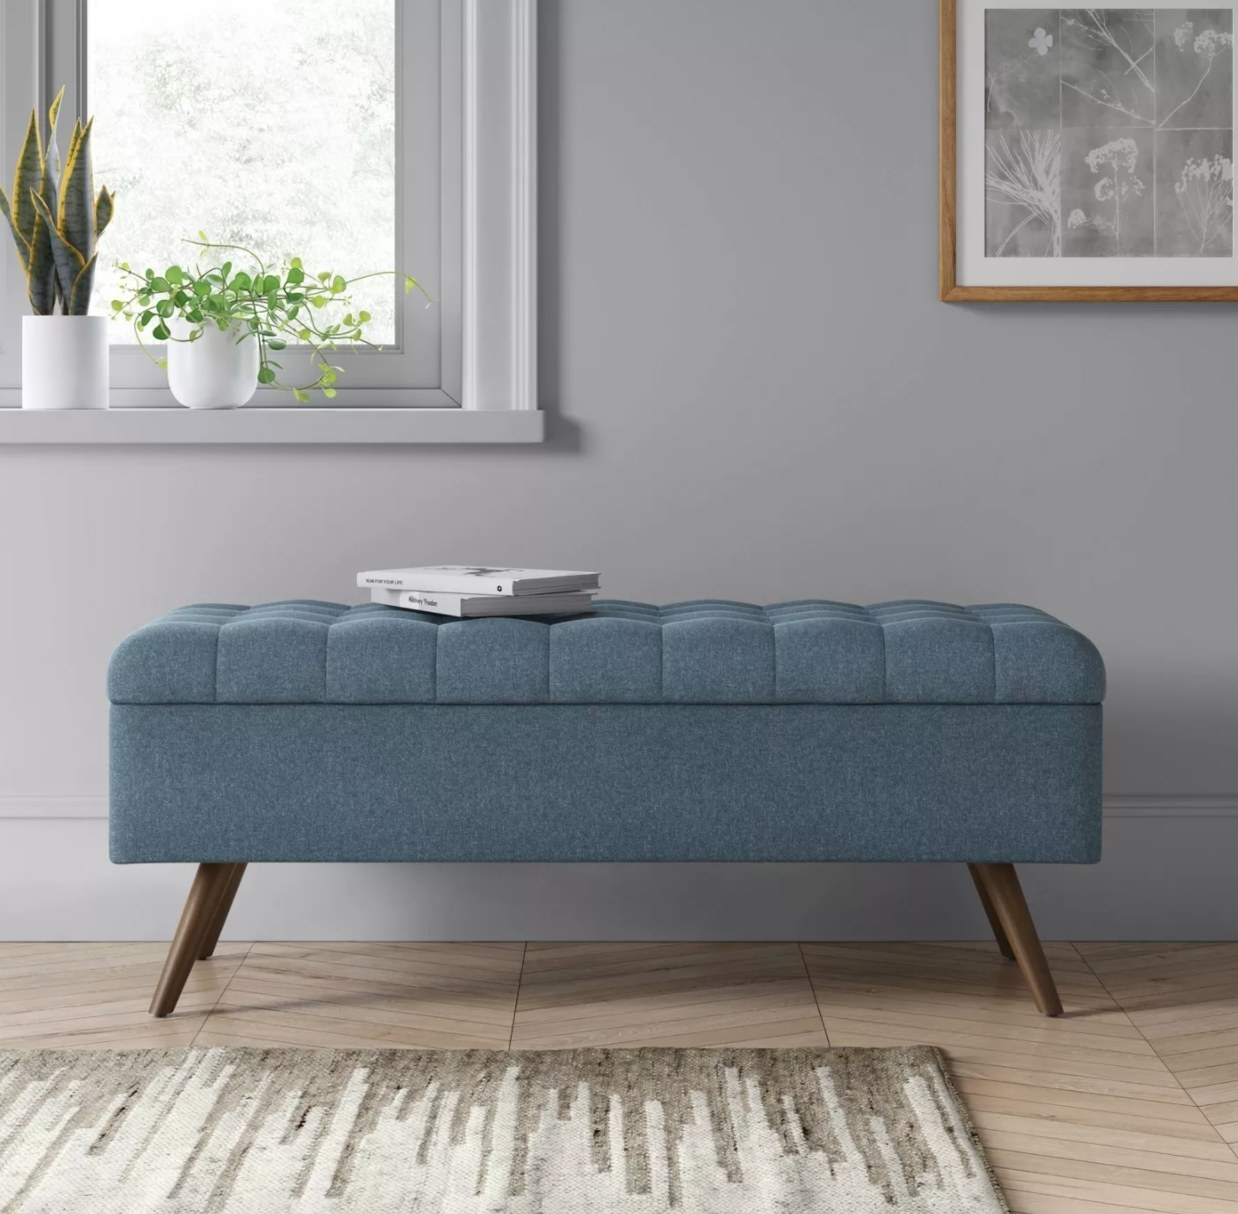 A blue tufted storage bench with wooden legs